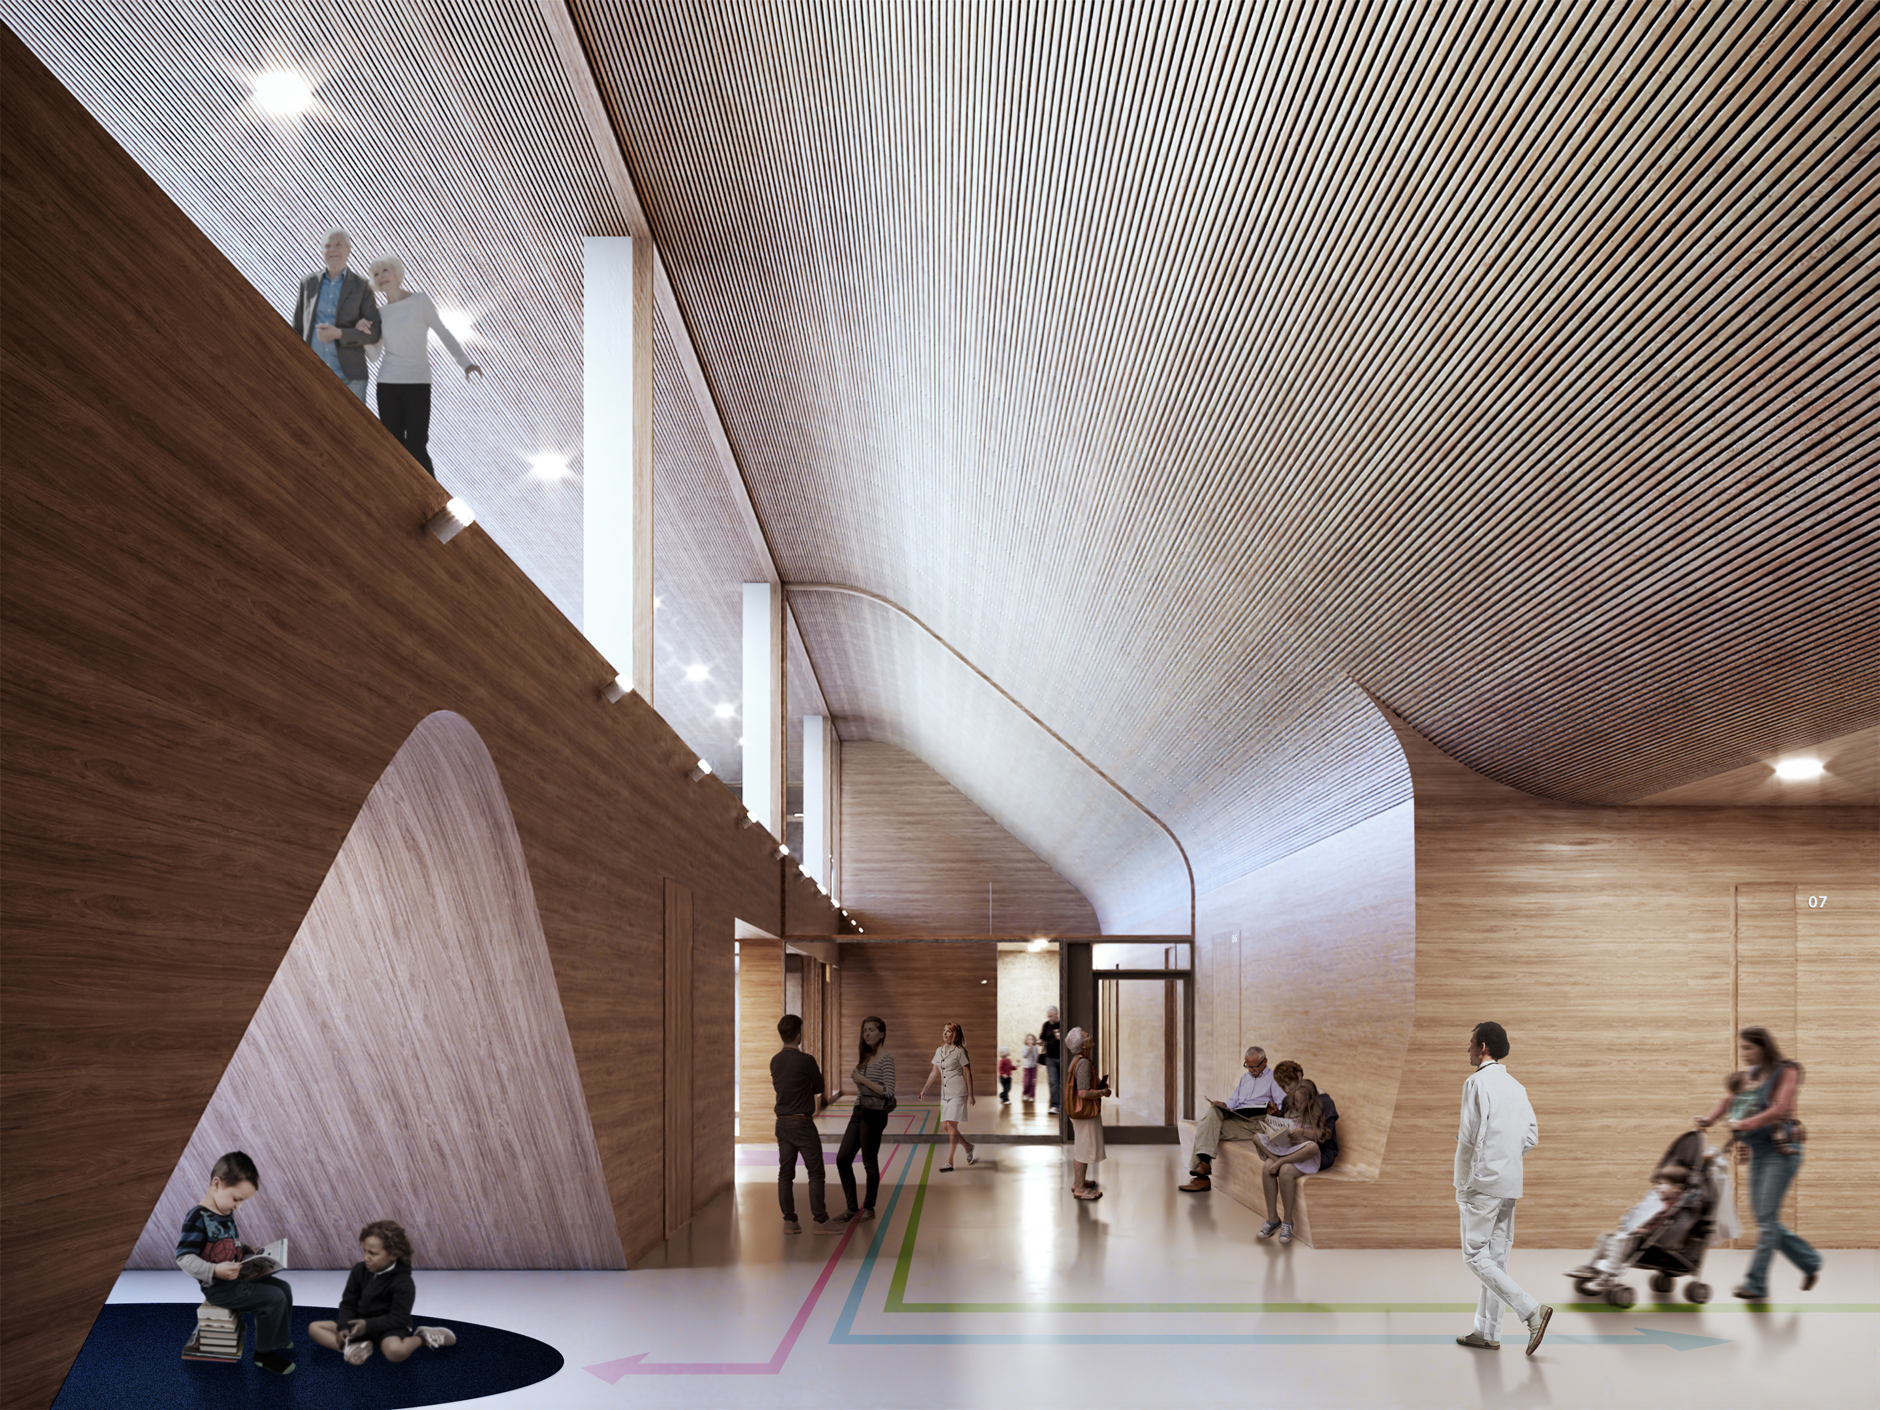 Interior visualization of the lobby in the emergency department with wooden surfaces in the Lapland Central Hospital designed by Verstas Architects